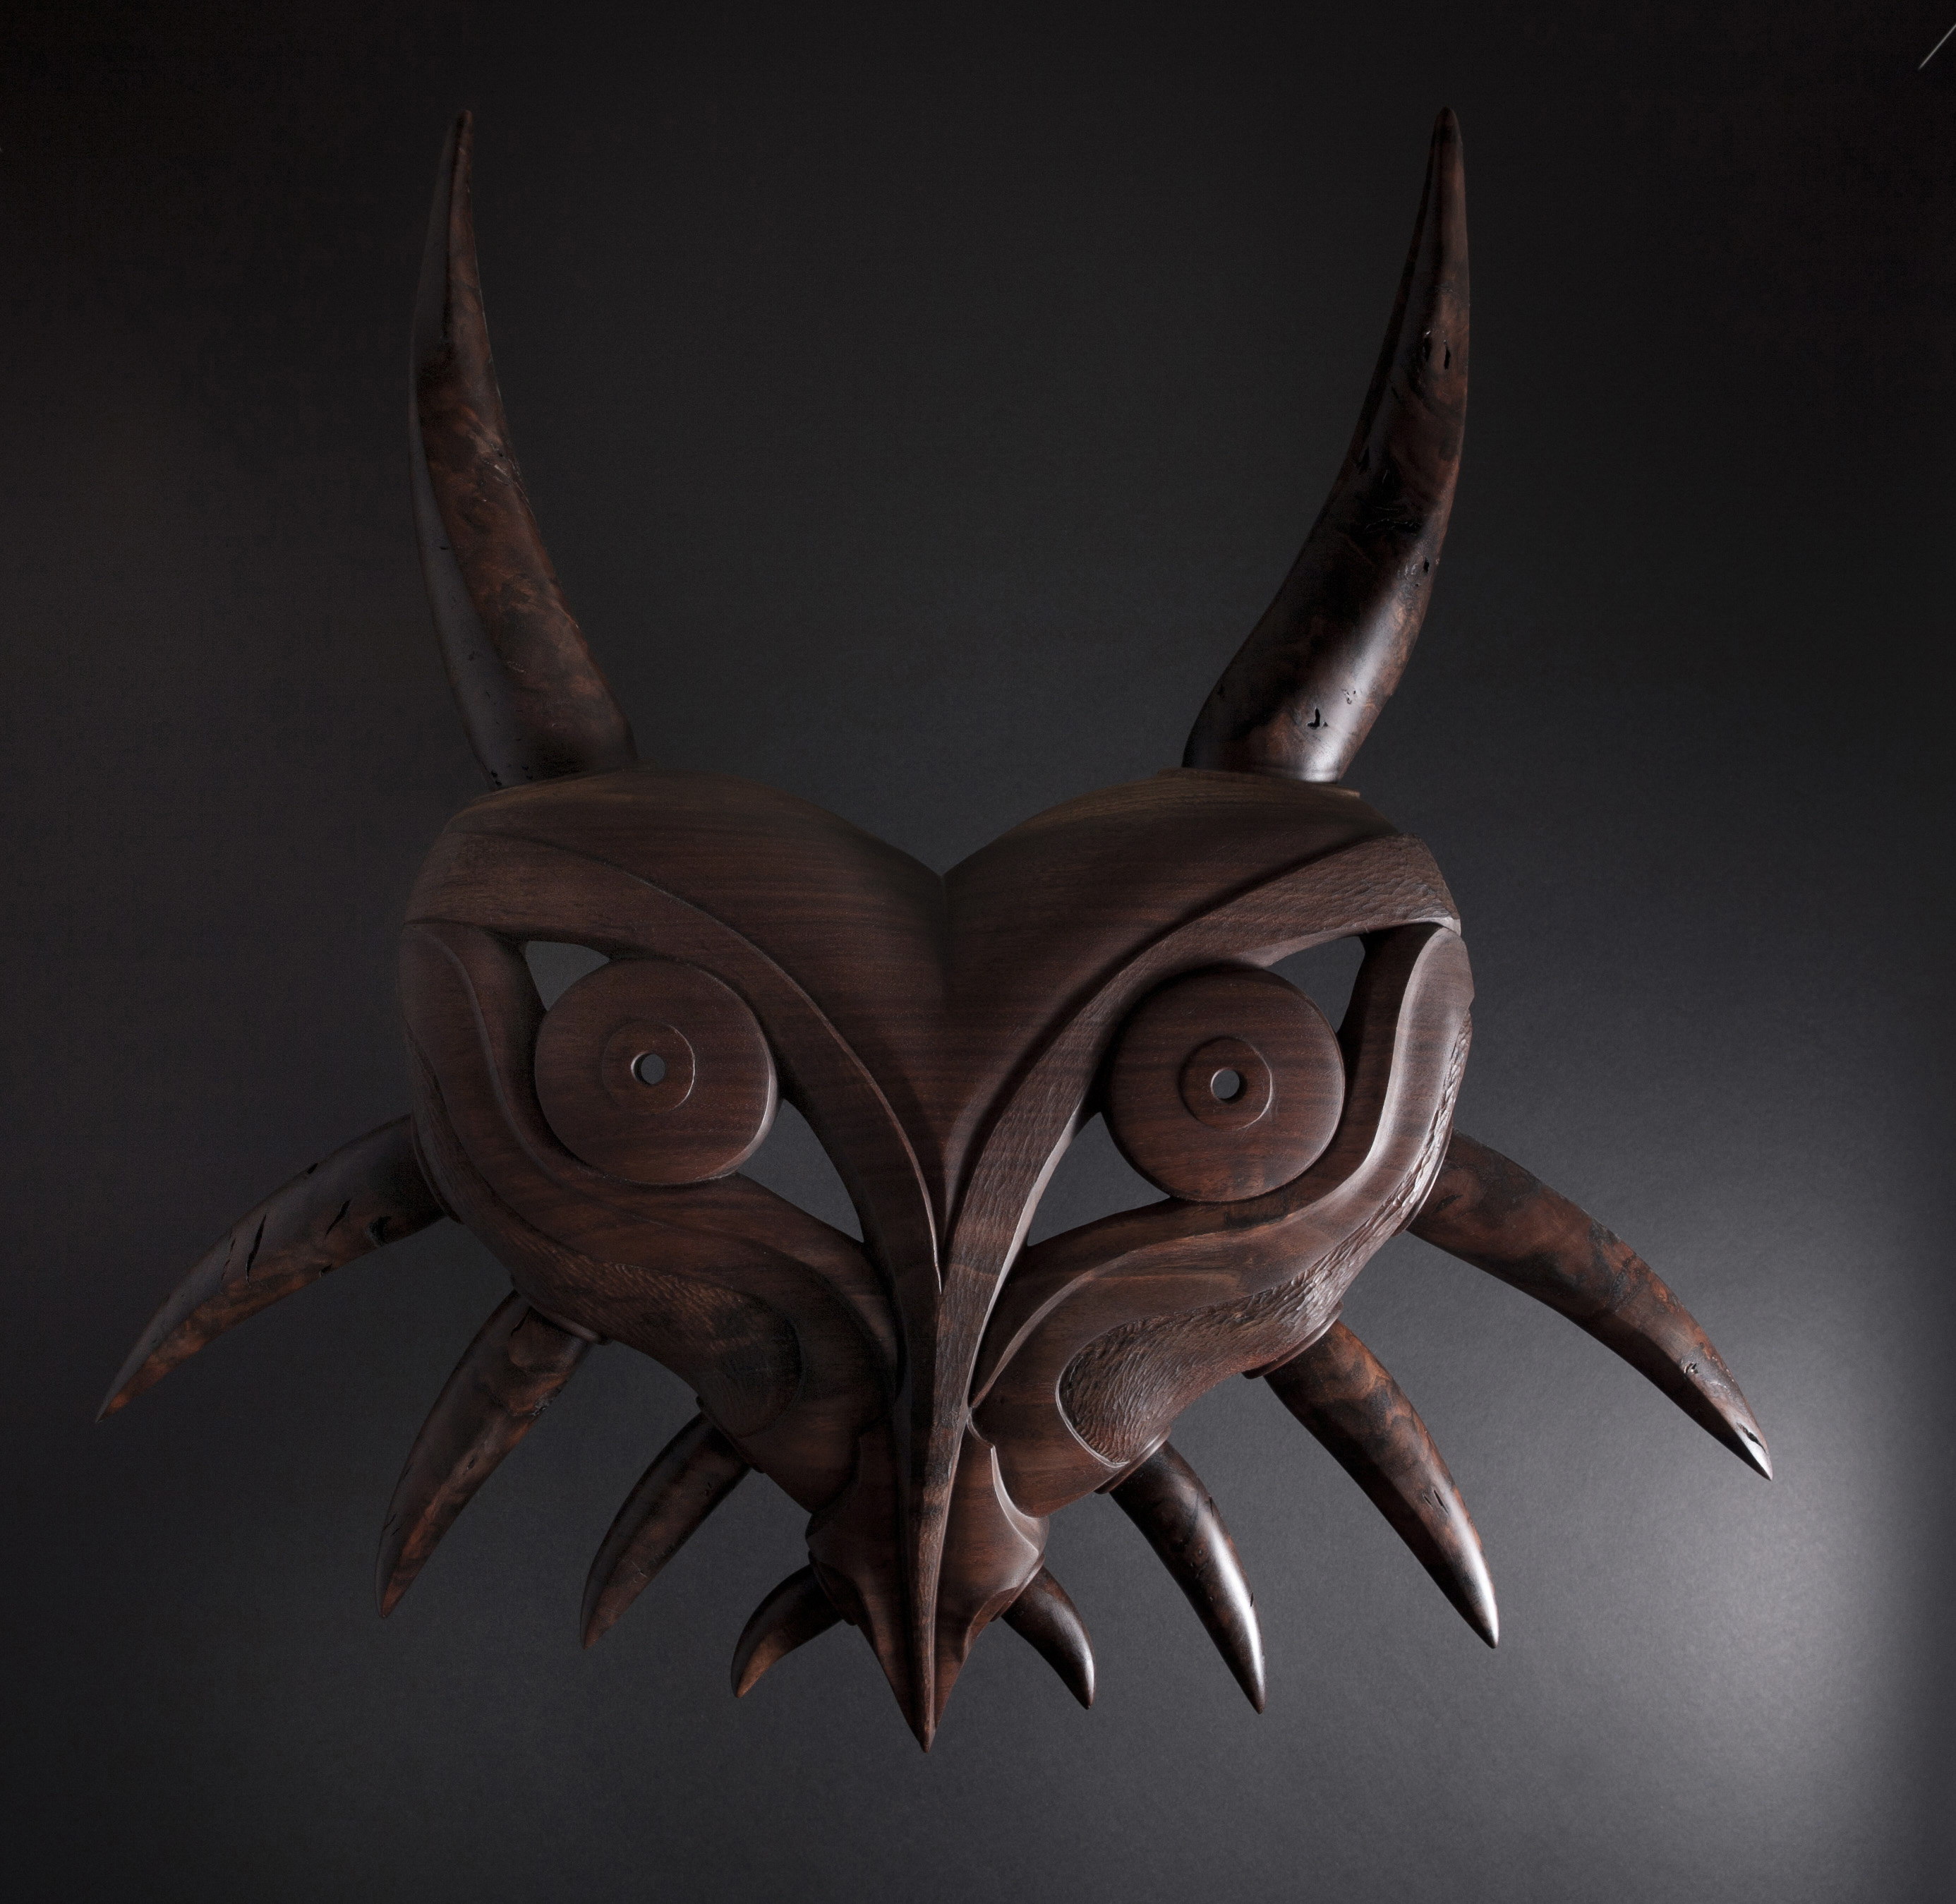 Large Majora's mask / Haida mantis